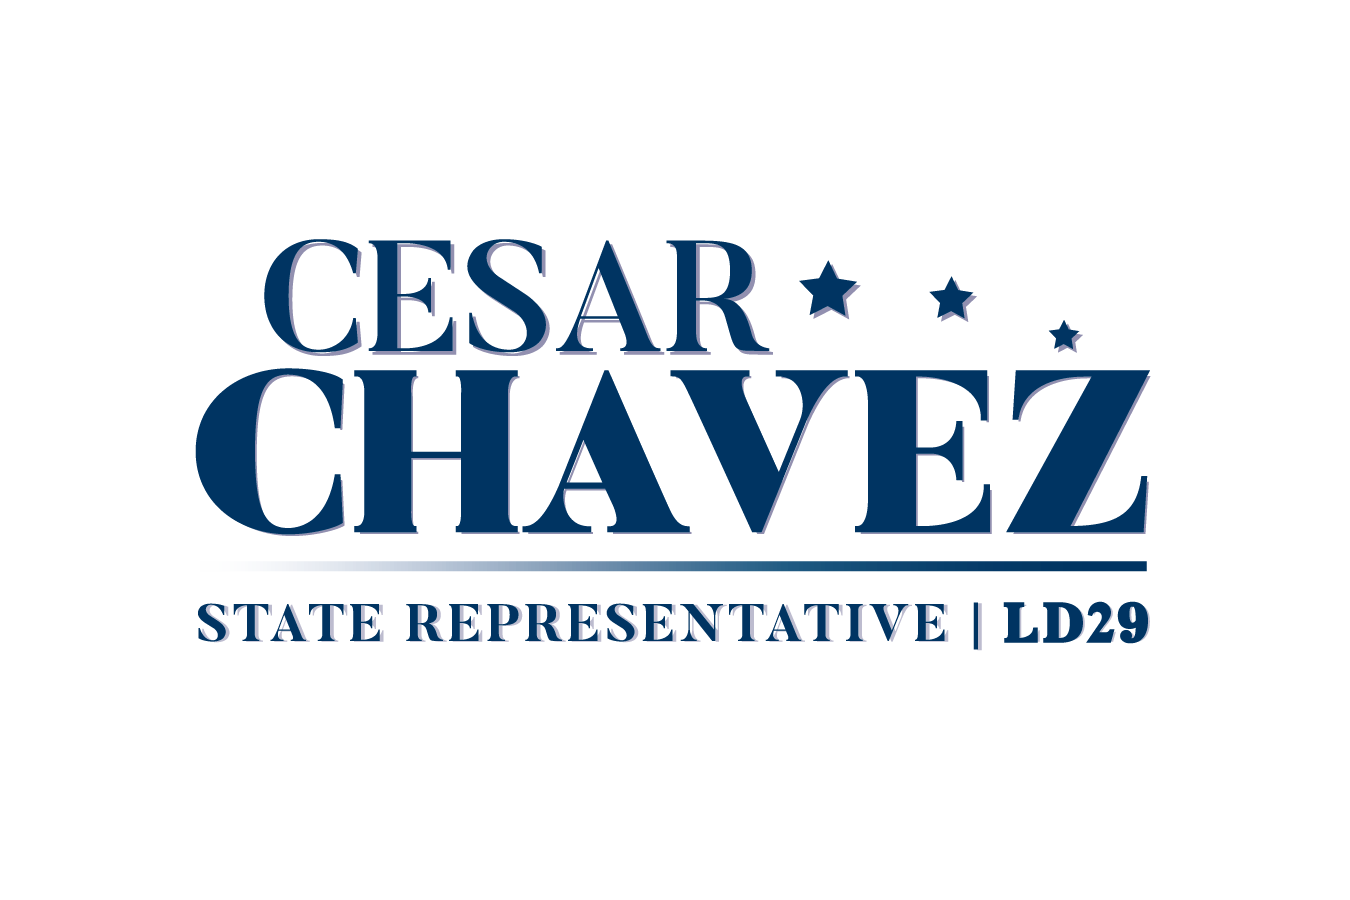 César Chávez for AZ State House - LD 29